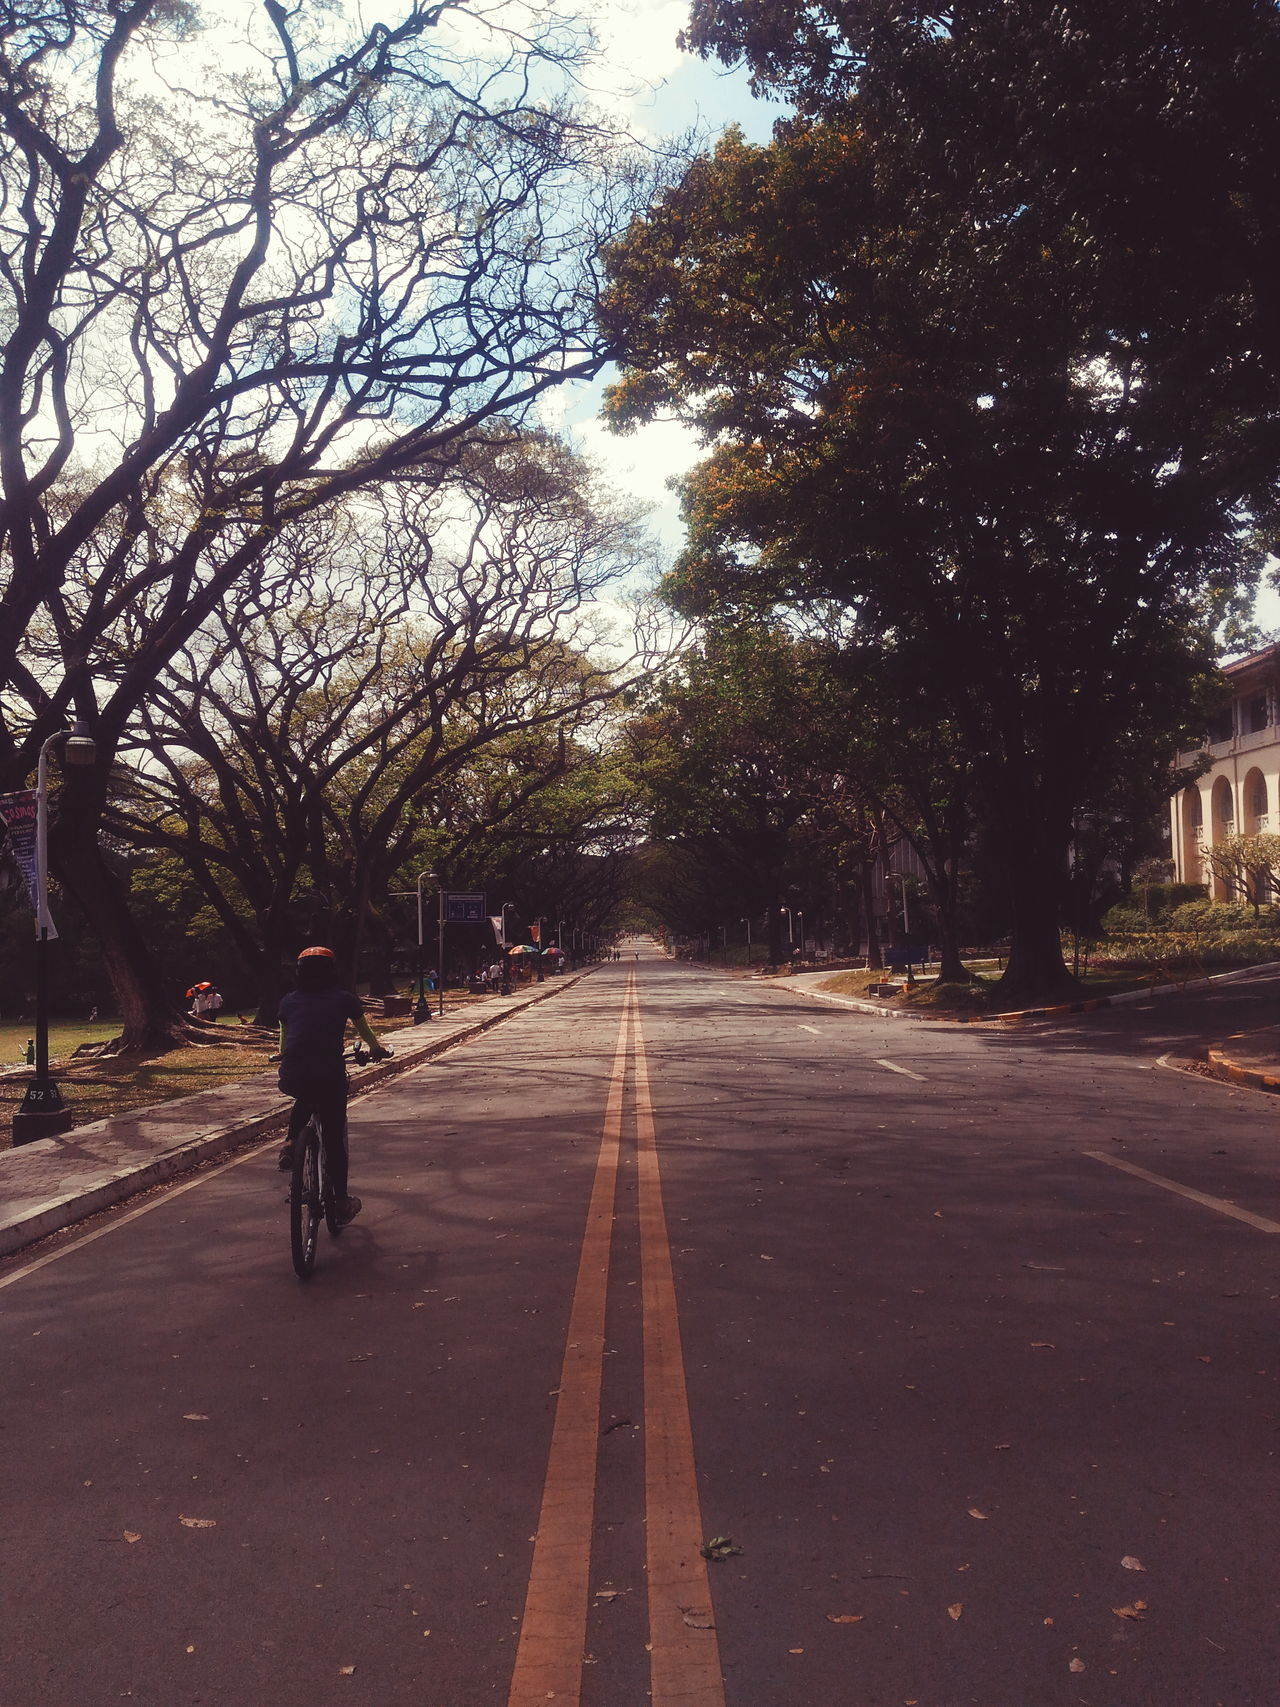 The Way Forward Tree Road Outdoors Day Transportation Nature Road Sign Beauty In Nature Sky Cycling Bicycle Bike Cyclist No Car Trees Along The Road Field University Of The Philippines Up UP Diliman University Campus Open Road Clear Road Acasia Tree